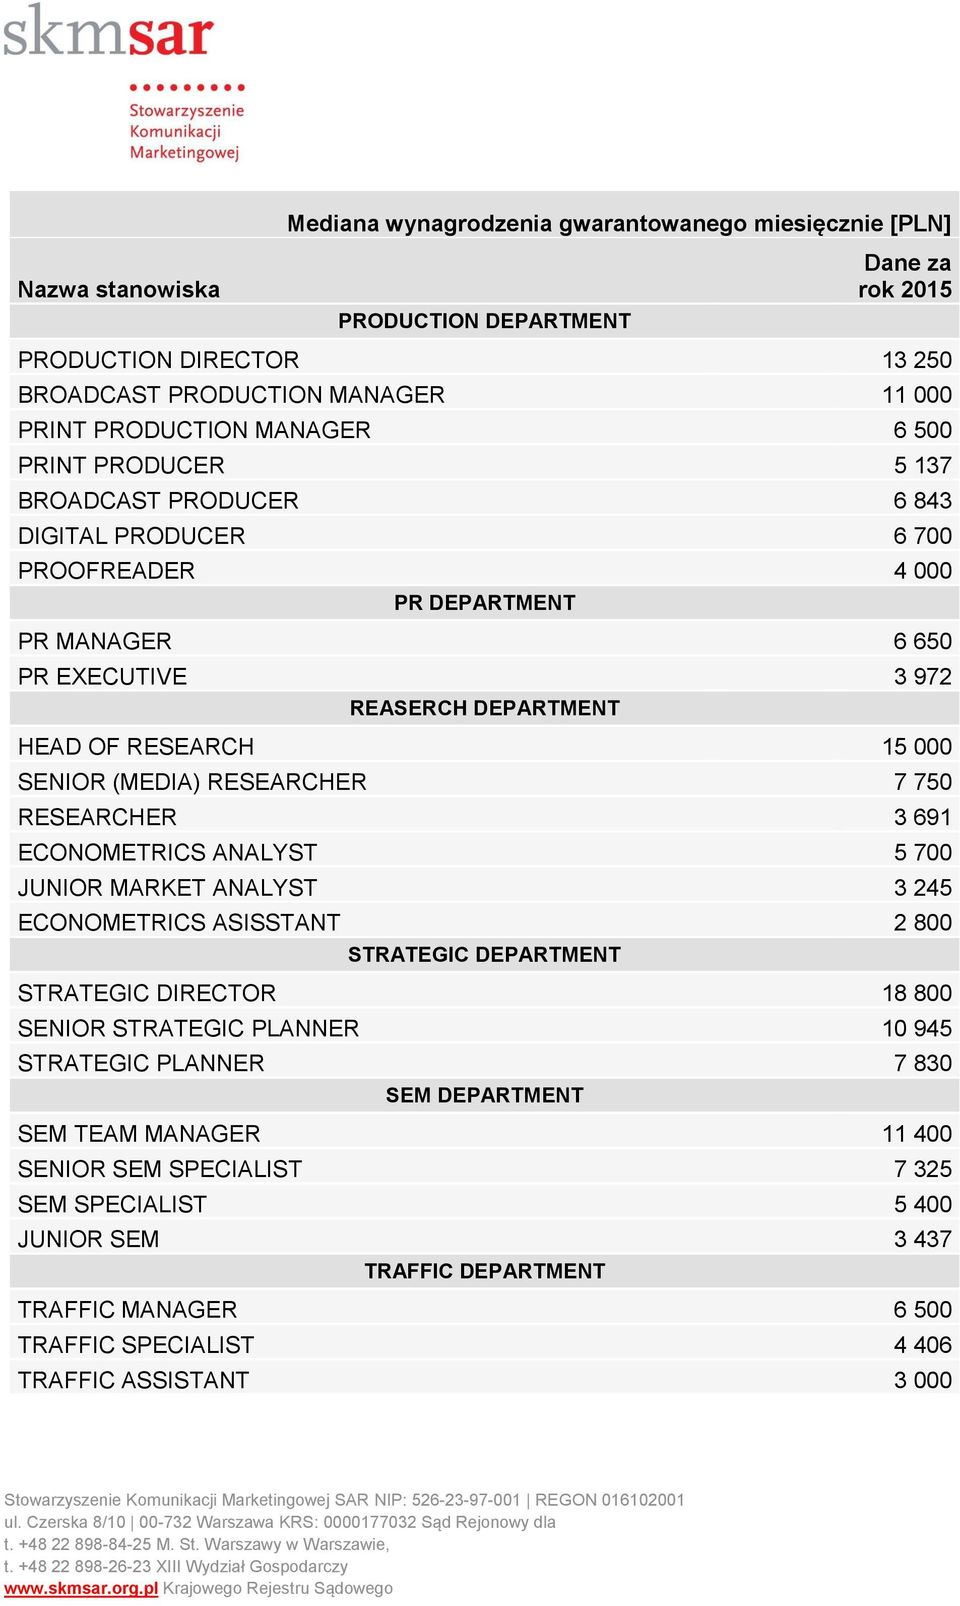 (MEDIA) RESEARCHER 7 750 RESEARCHER 3 691 ECONOMETRICS ANALYST 5 700 JUNIOR MARKET ANALYST 3 245 ECONOMETRICS ASISSTANT 2 800 STRATEGIC DEPARTMENT STRATEGIC DIRECTOR 18 800 SENIOR STRATEGIC PLANNER